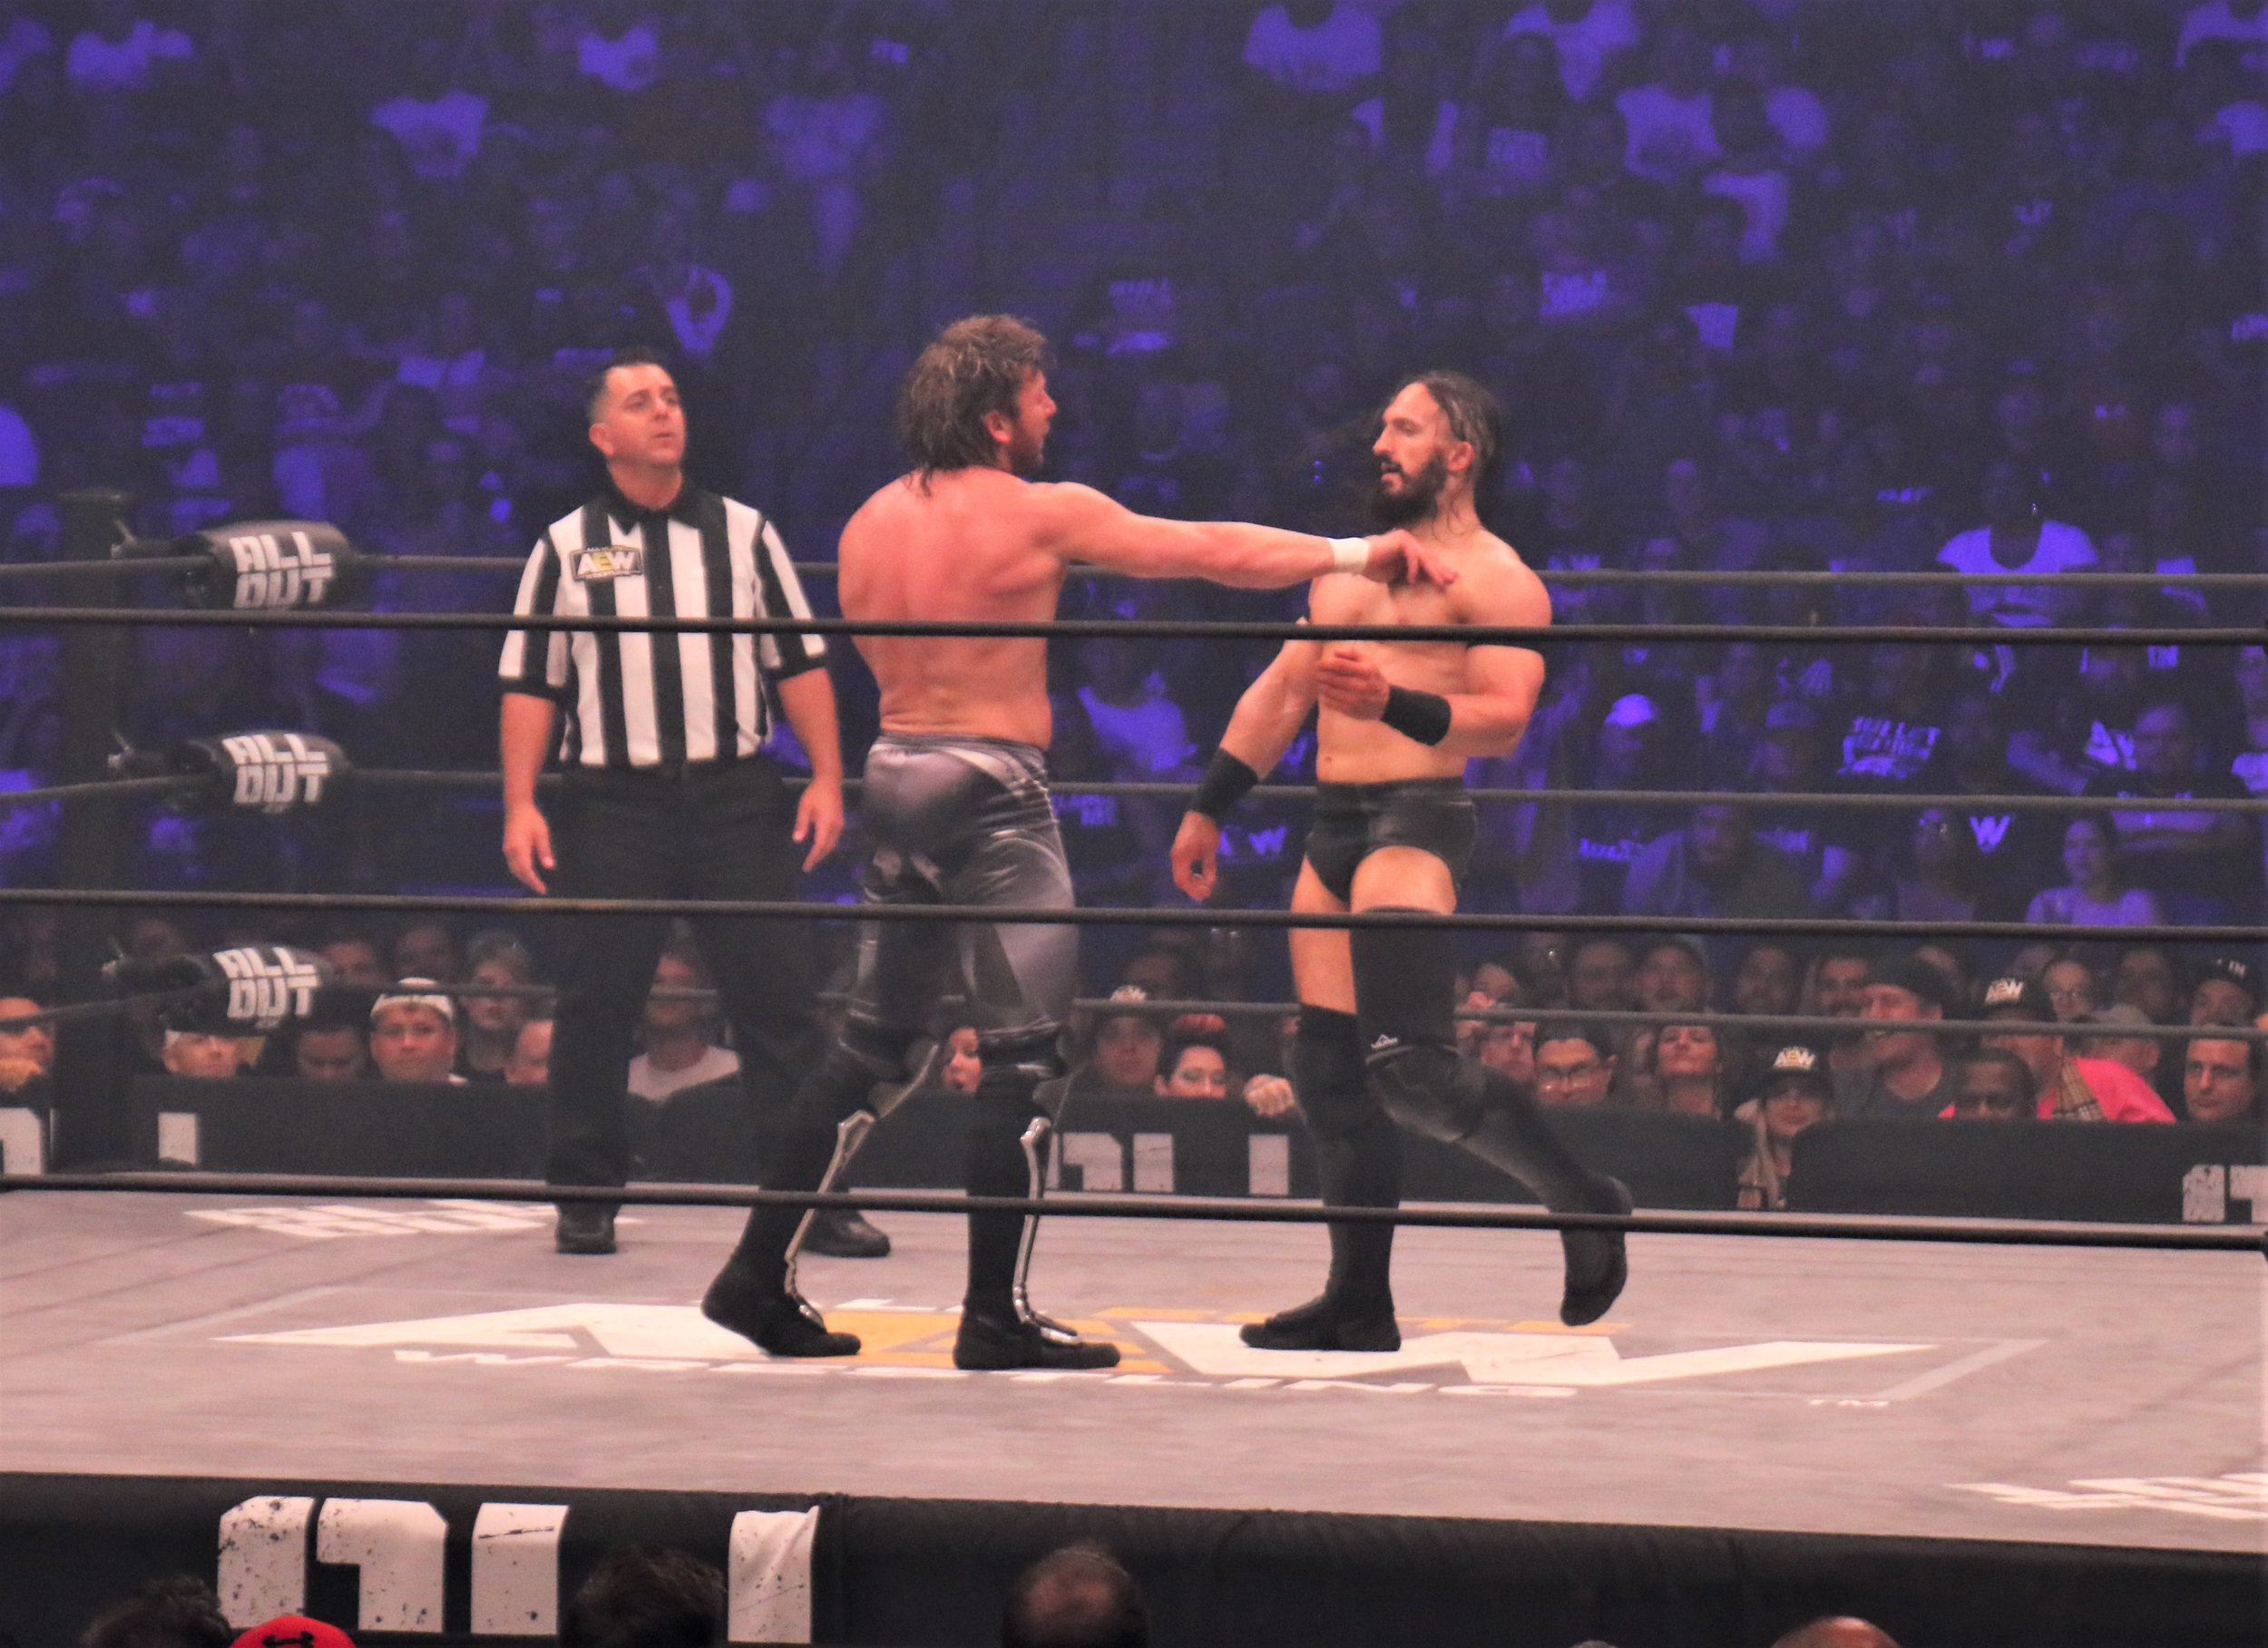 Kenny Omega faces off with PAC.